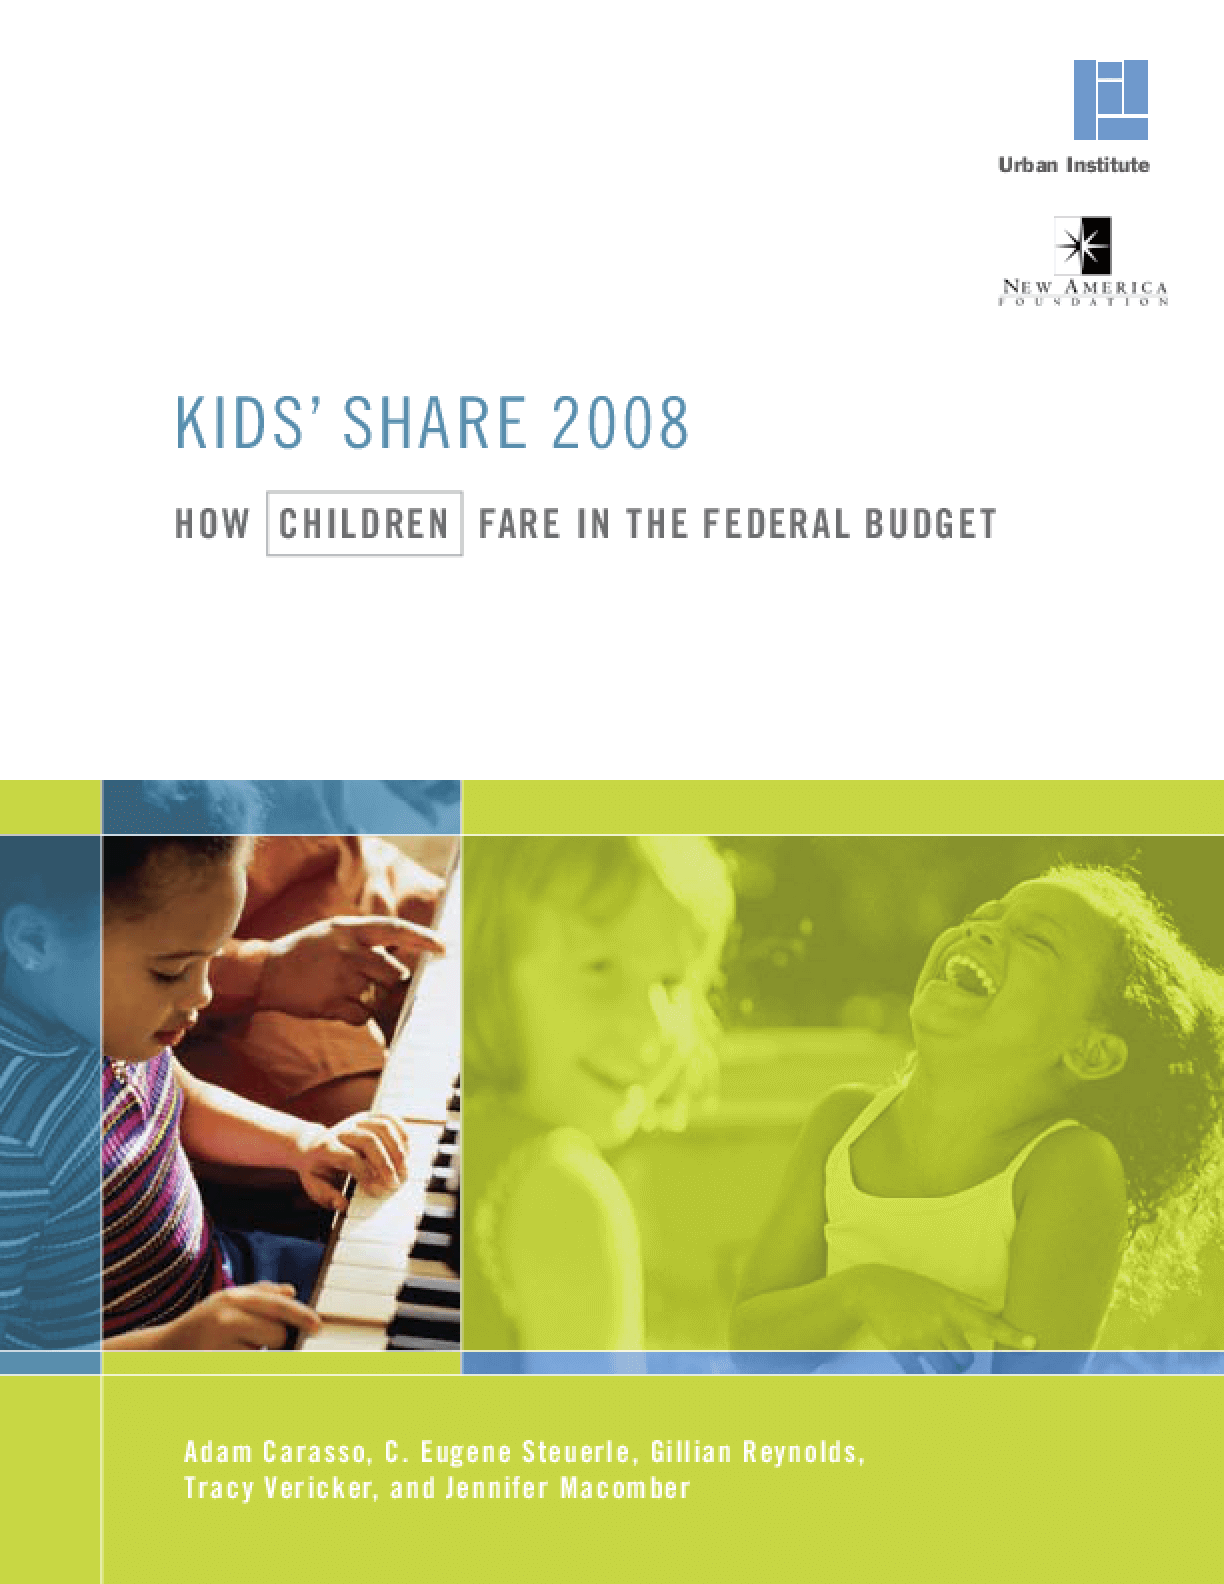 Kids' Share 2008: How Children Fare in the Federal Budget